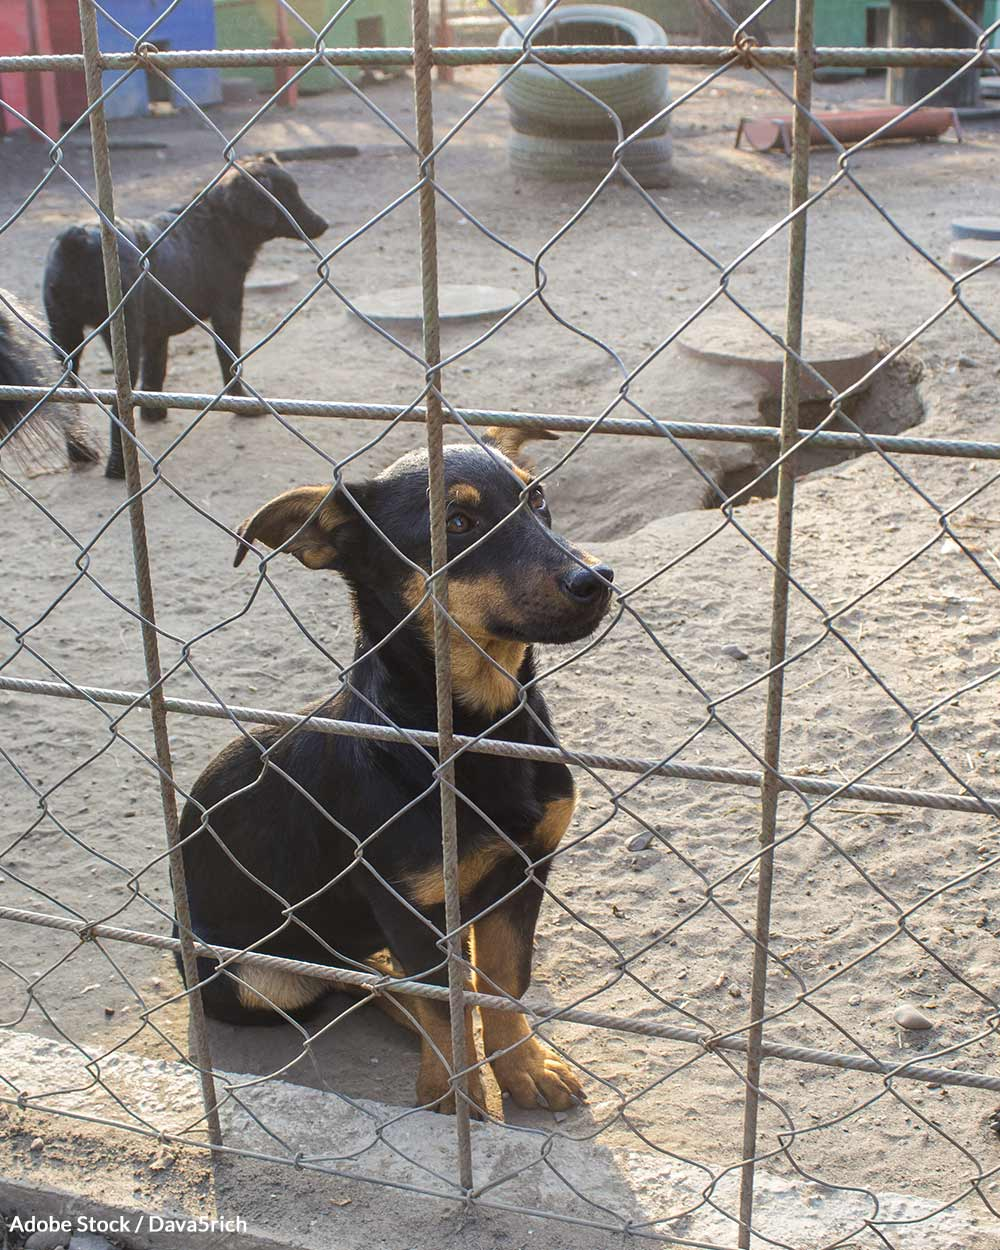 Help us put puppy mills out of business once and for all!